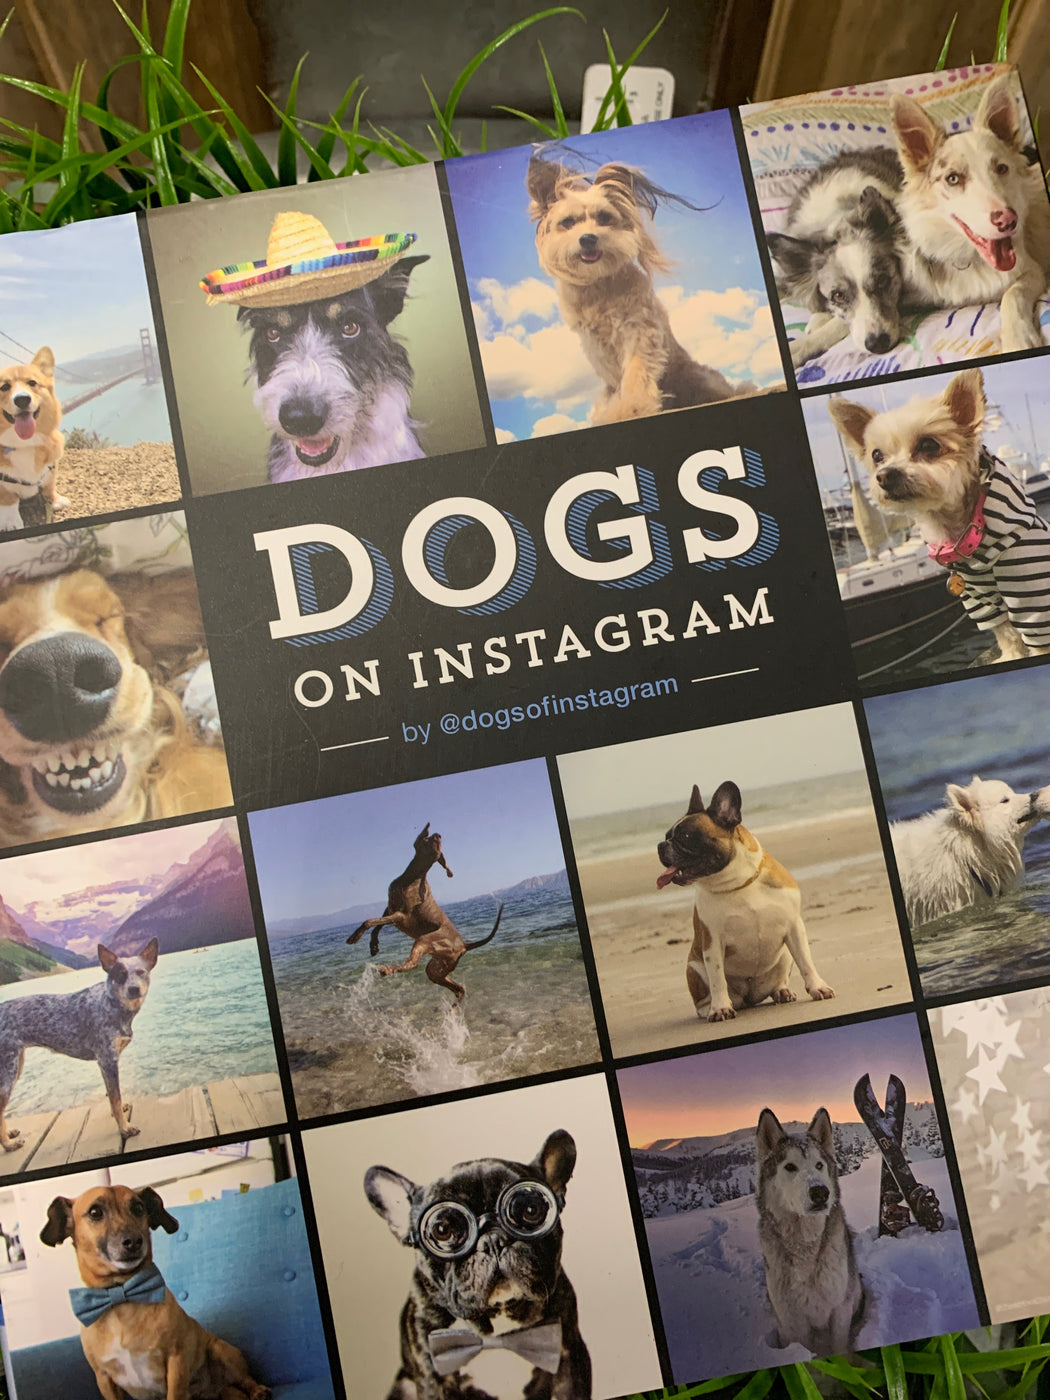 Dog lovers are a passionate bunch, and Instagram is the perfect platform for expressing their devotion. The curators behind @dogsofinstagram channel this passion perfectly in this delightful book, a must-have collection featuring over 400 of the best crowdsourced dog photographs from their wildly popular feed. For dog lovers by dog lovers, this eclectic compilation celebrates the full spectrum of things to love about our four-legged friends.